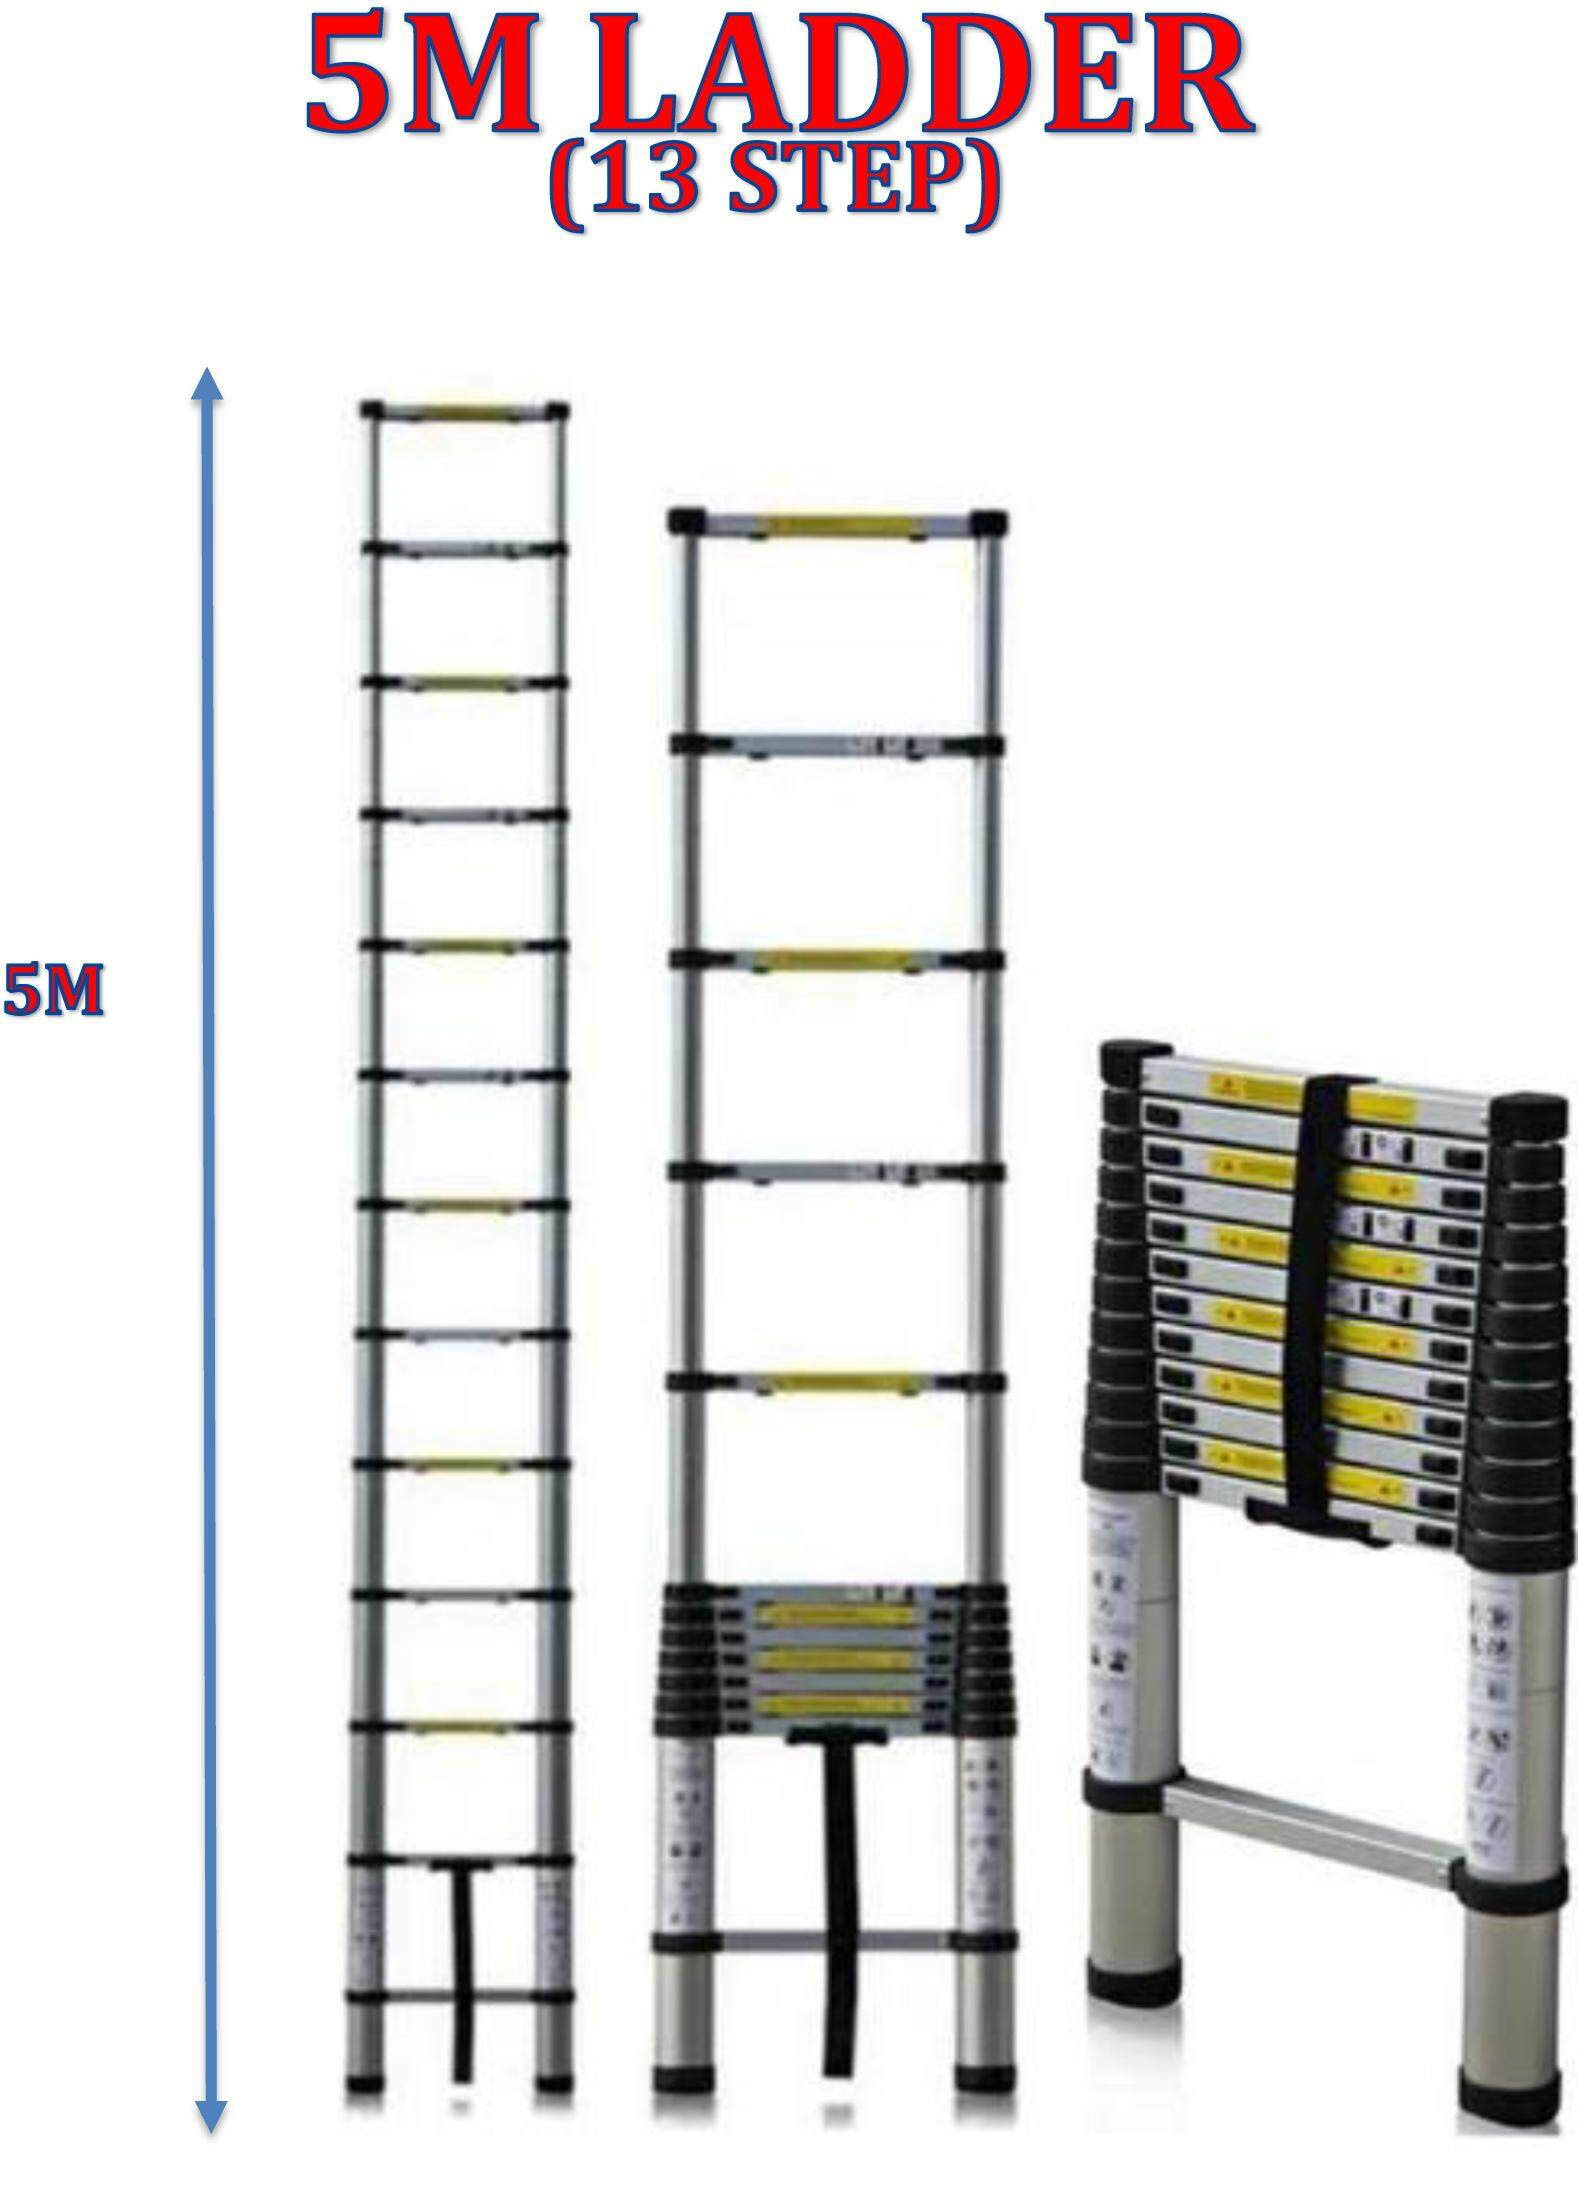 HIGH QUALITY ALUMINIUM TELESCOPIC EXTENDABLE LADDER 5M WITH 13 STEPS